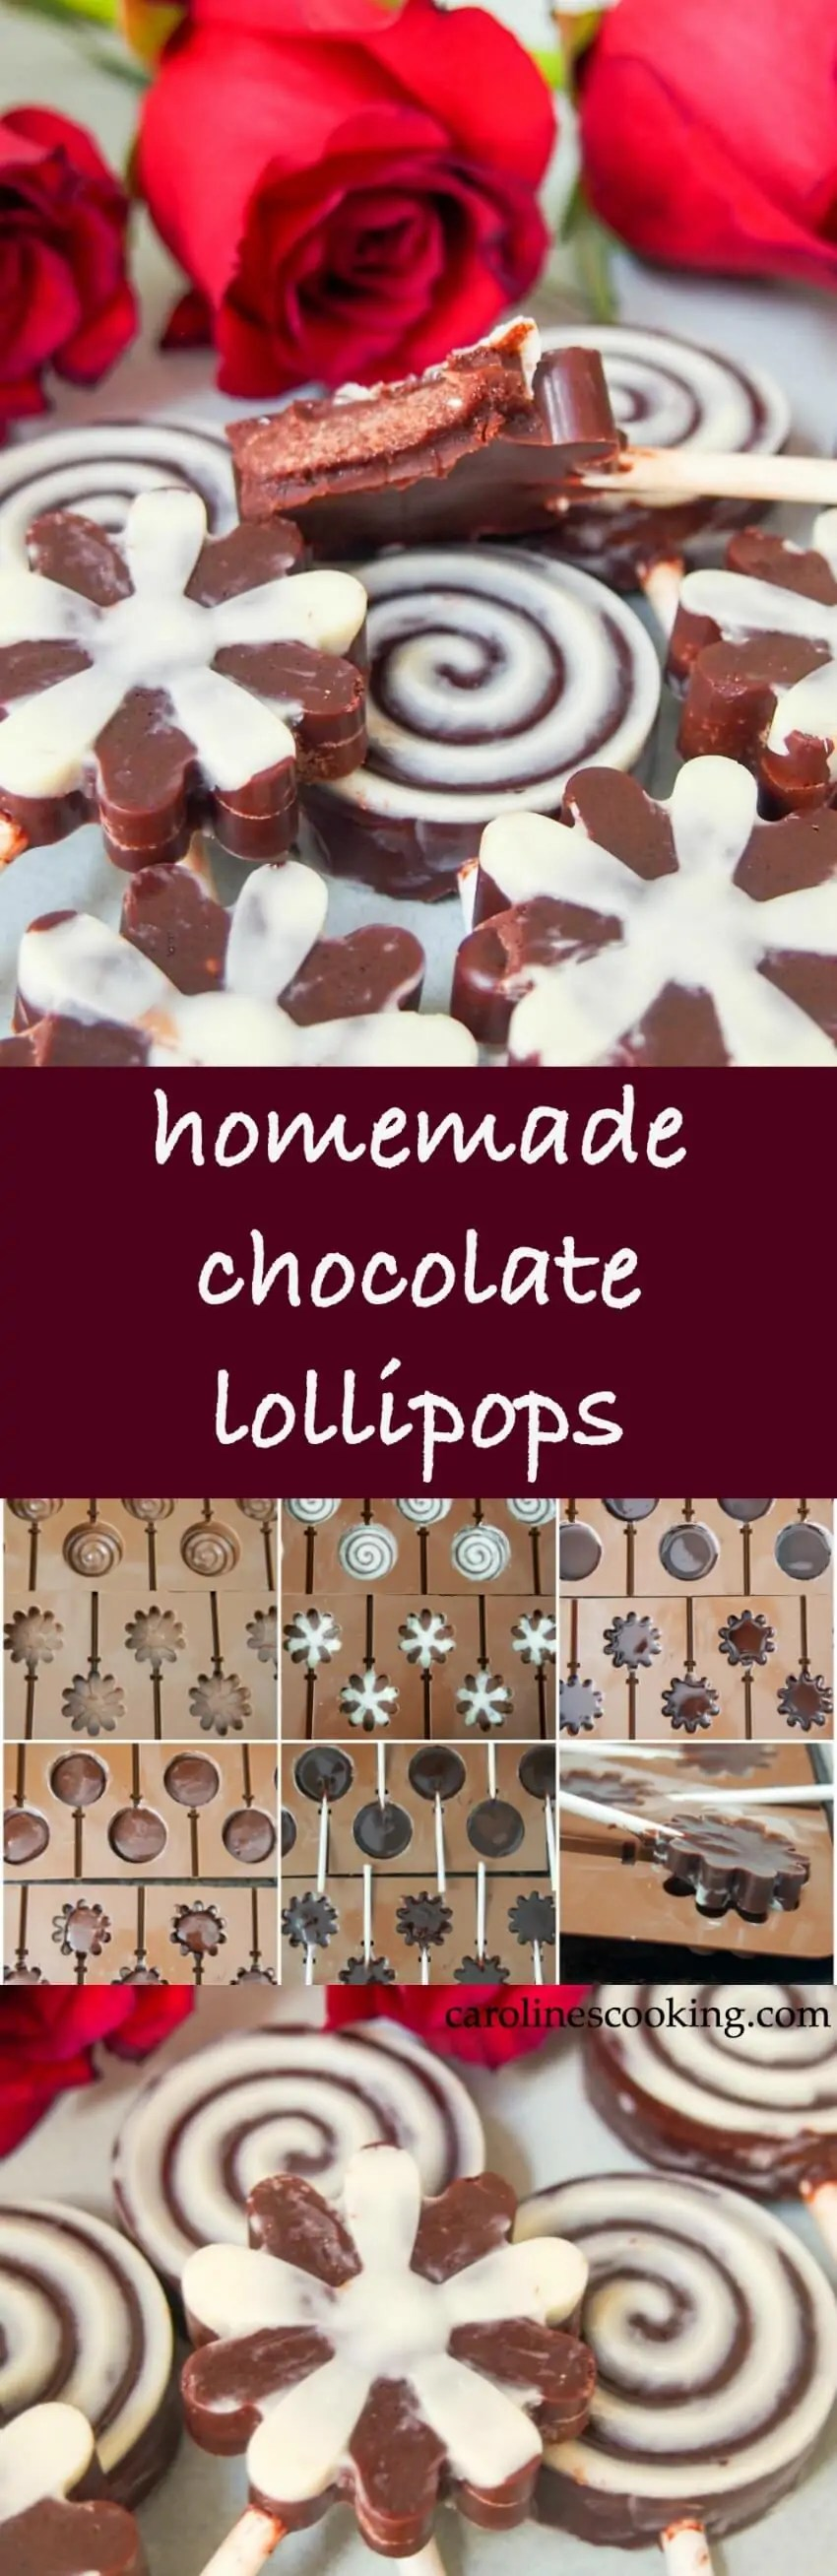 Looking for a healthier but tasty chocolate? These homemade chocolate lollipops are it! With a wonderful rich flavor & soft center, they're easy to make and are the perfect sweet treat for a holiday, special occasion or just because. Paleo, dairy free.